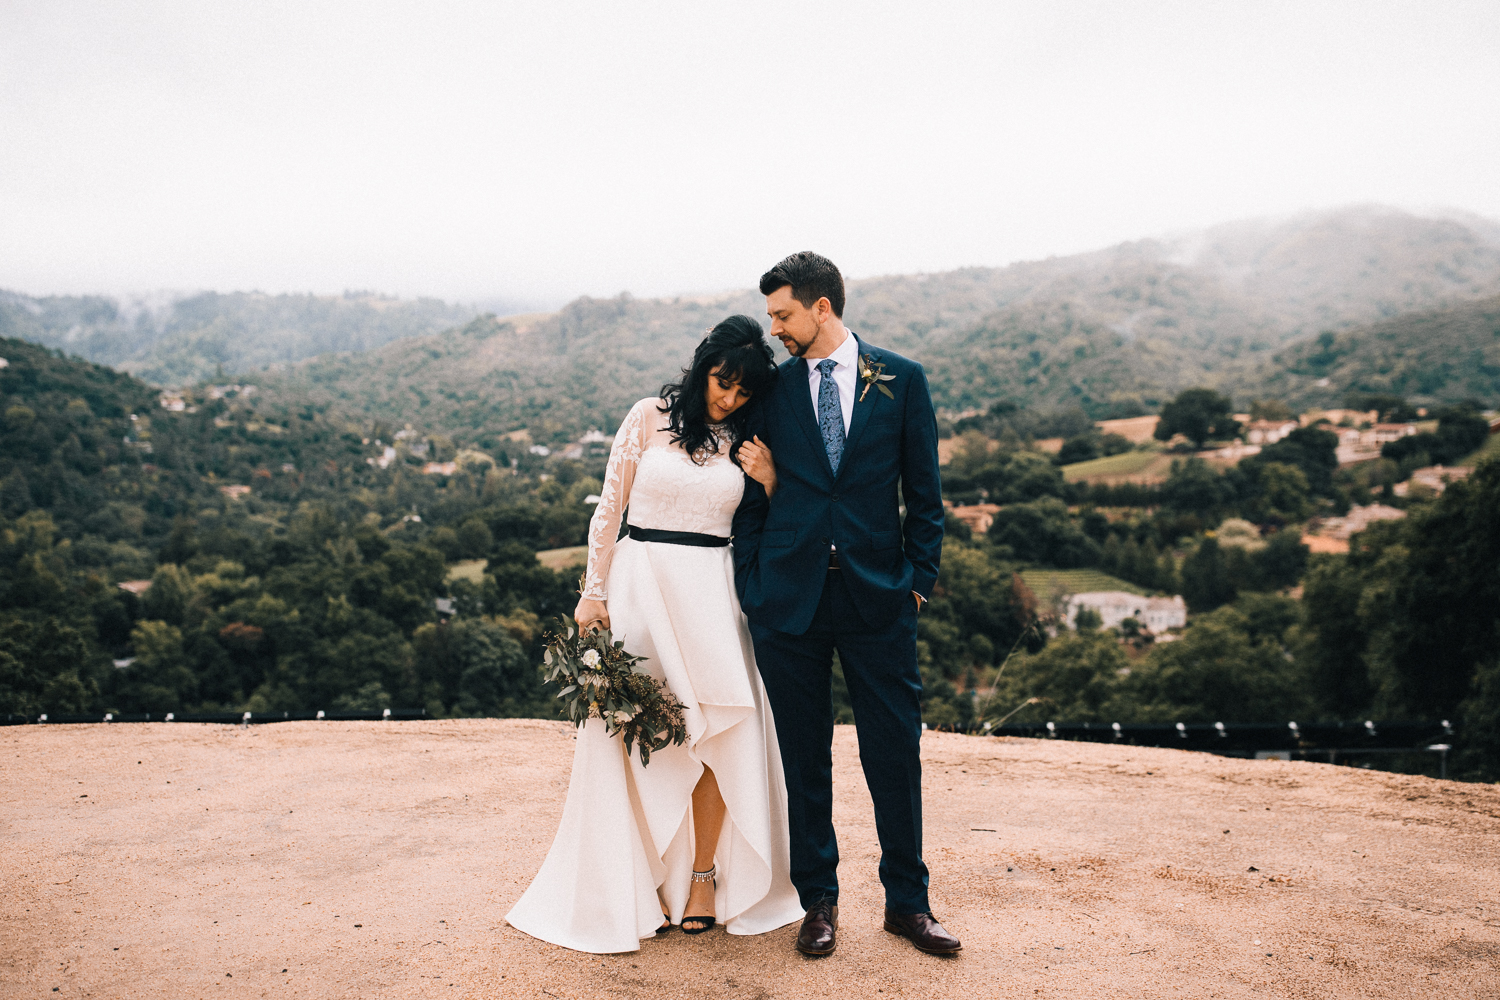 2019_05_ 182019.05.19 Lisa + Eddie South Bay Wedding Blog Photos Edited For Web 0105.jpg